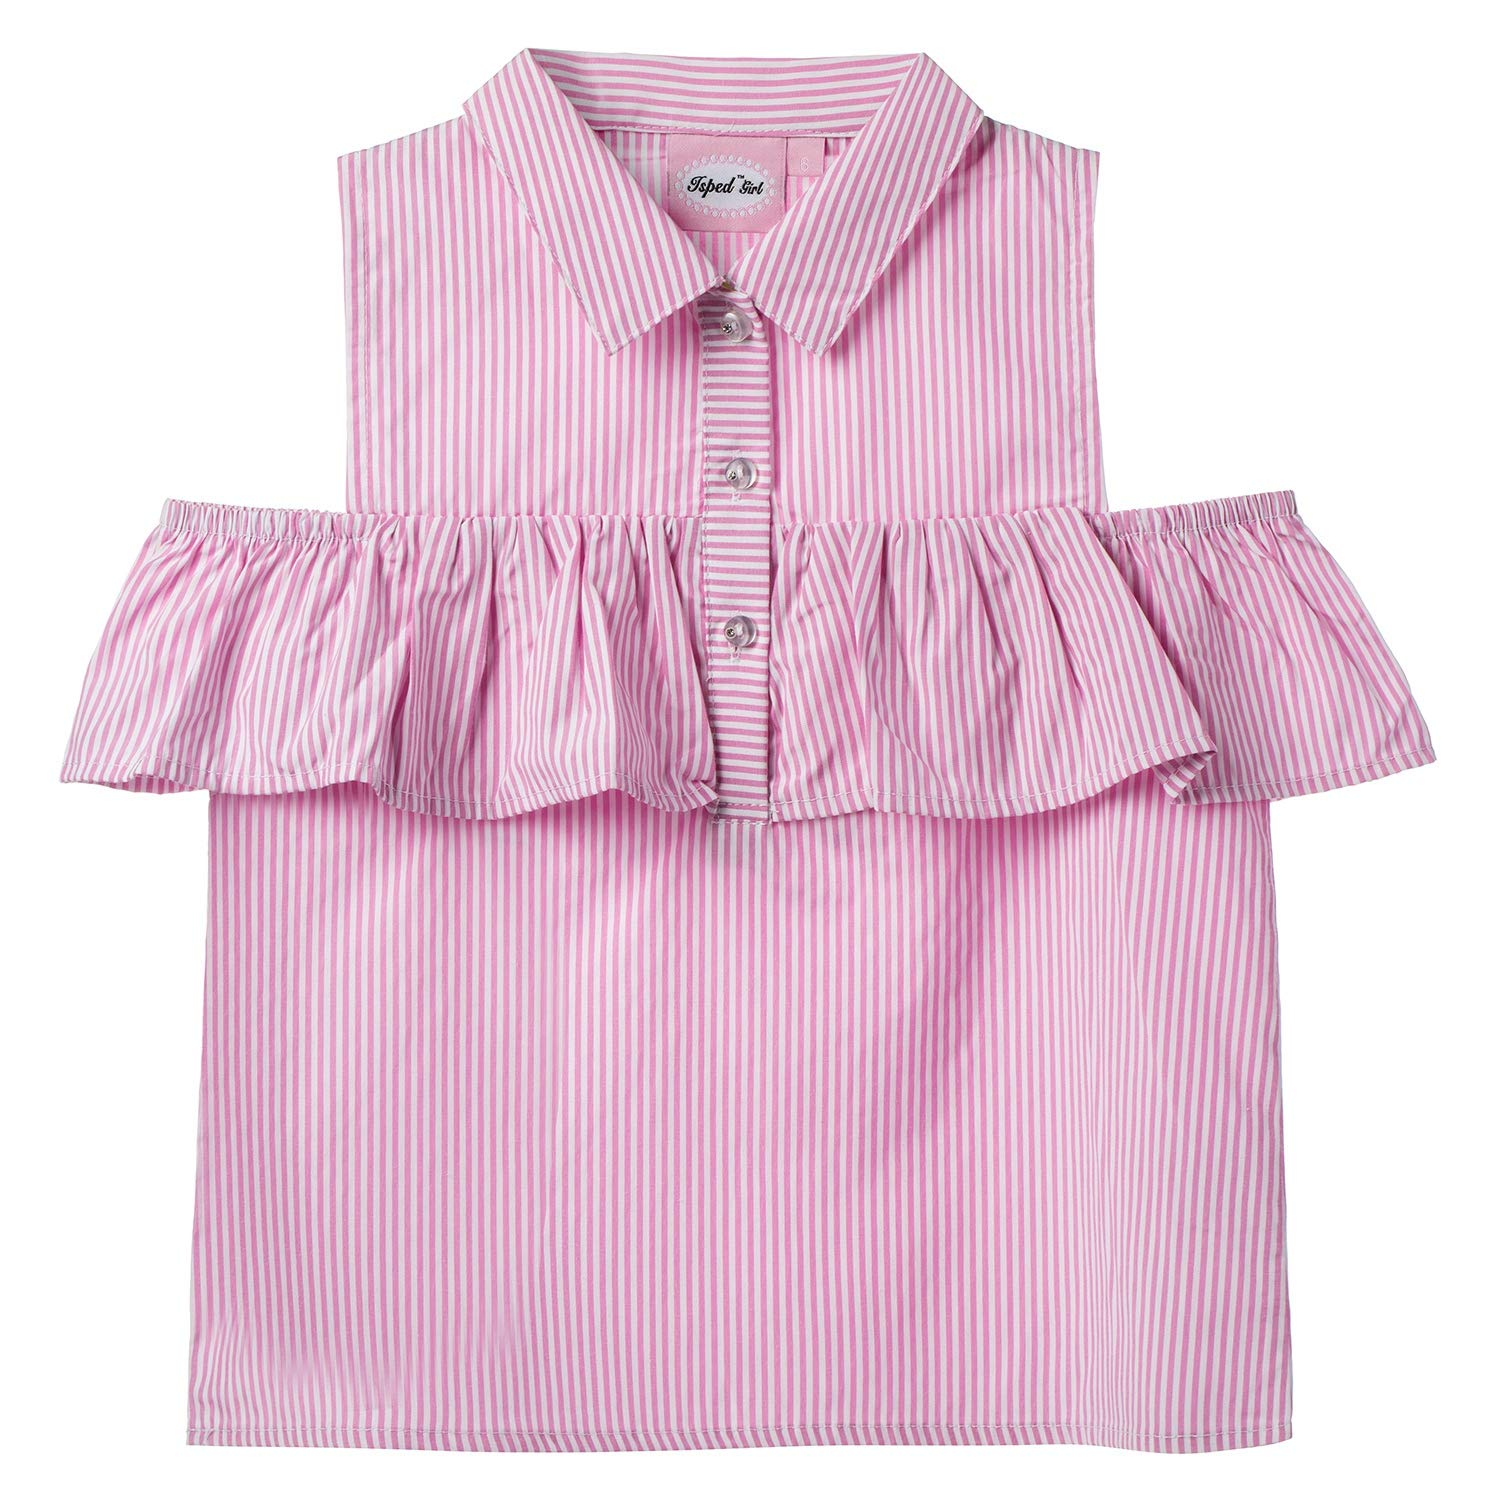 Isped Shirts for Girls Striped with Flounces Summer Girls Blouses, White+pink, 8Y